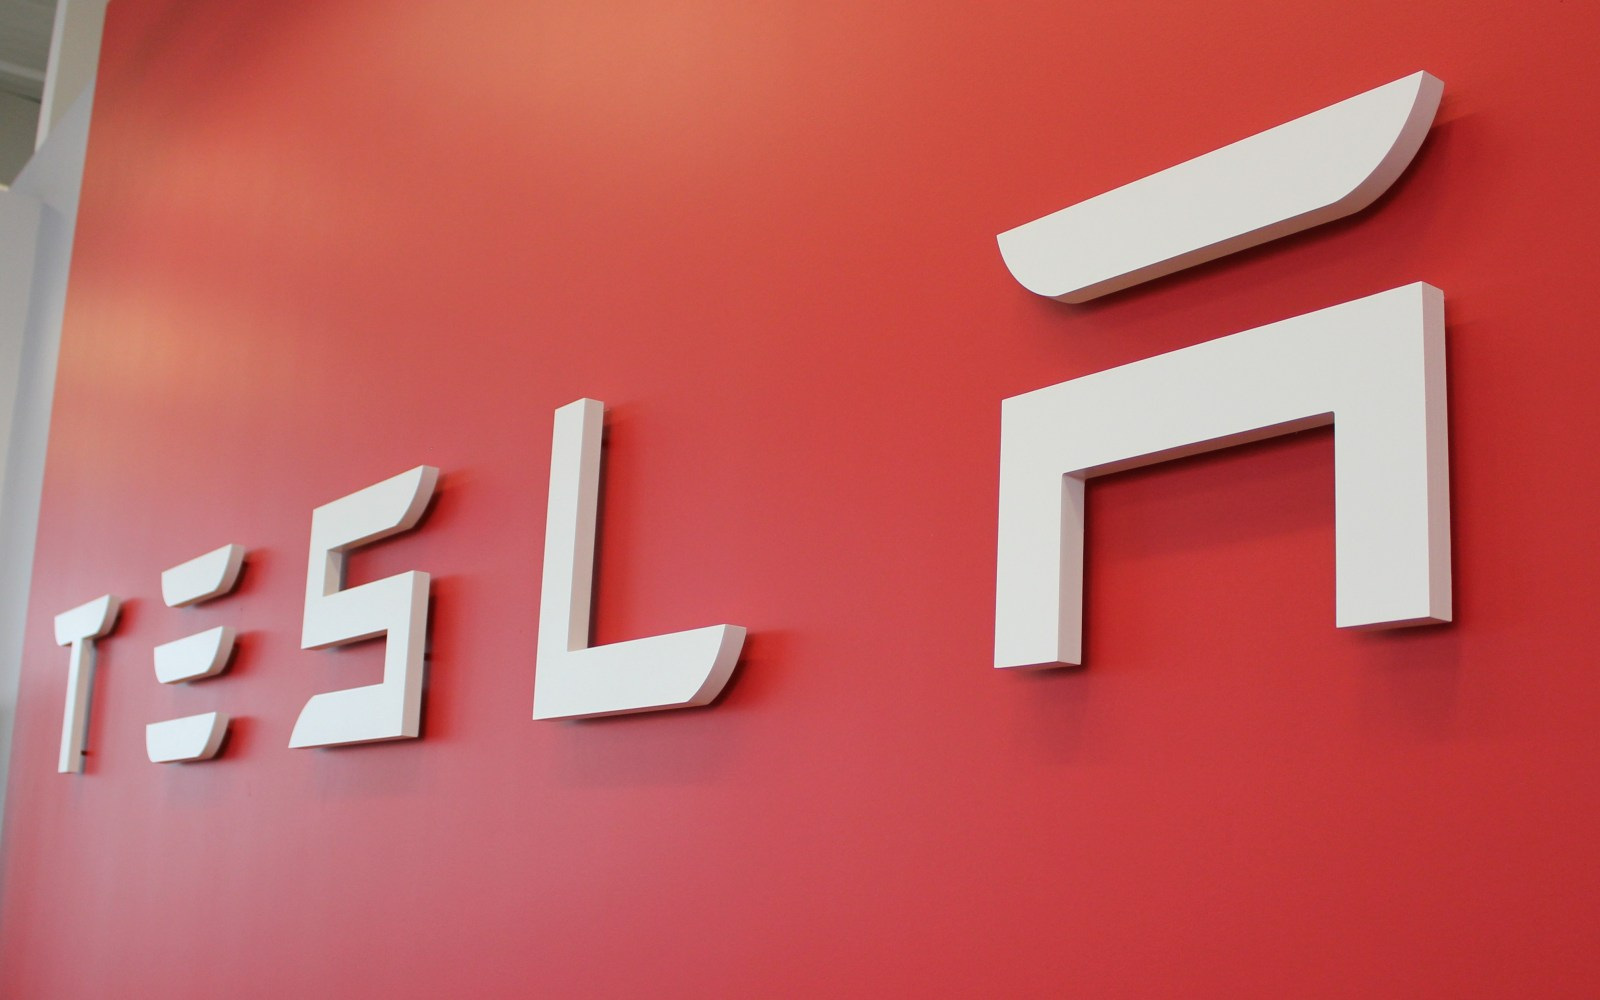 The story behind the 'false' Tesla suspension complaints to NHTSA